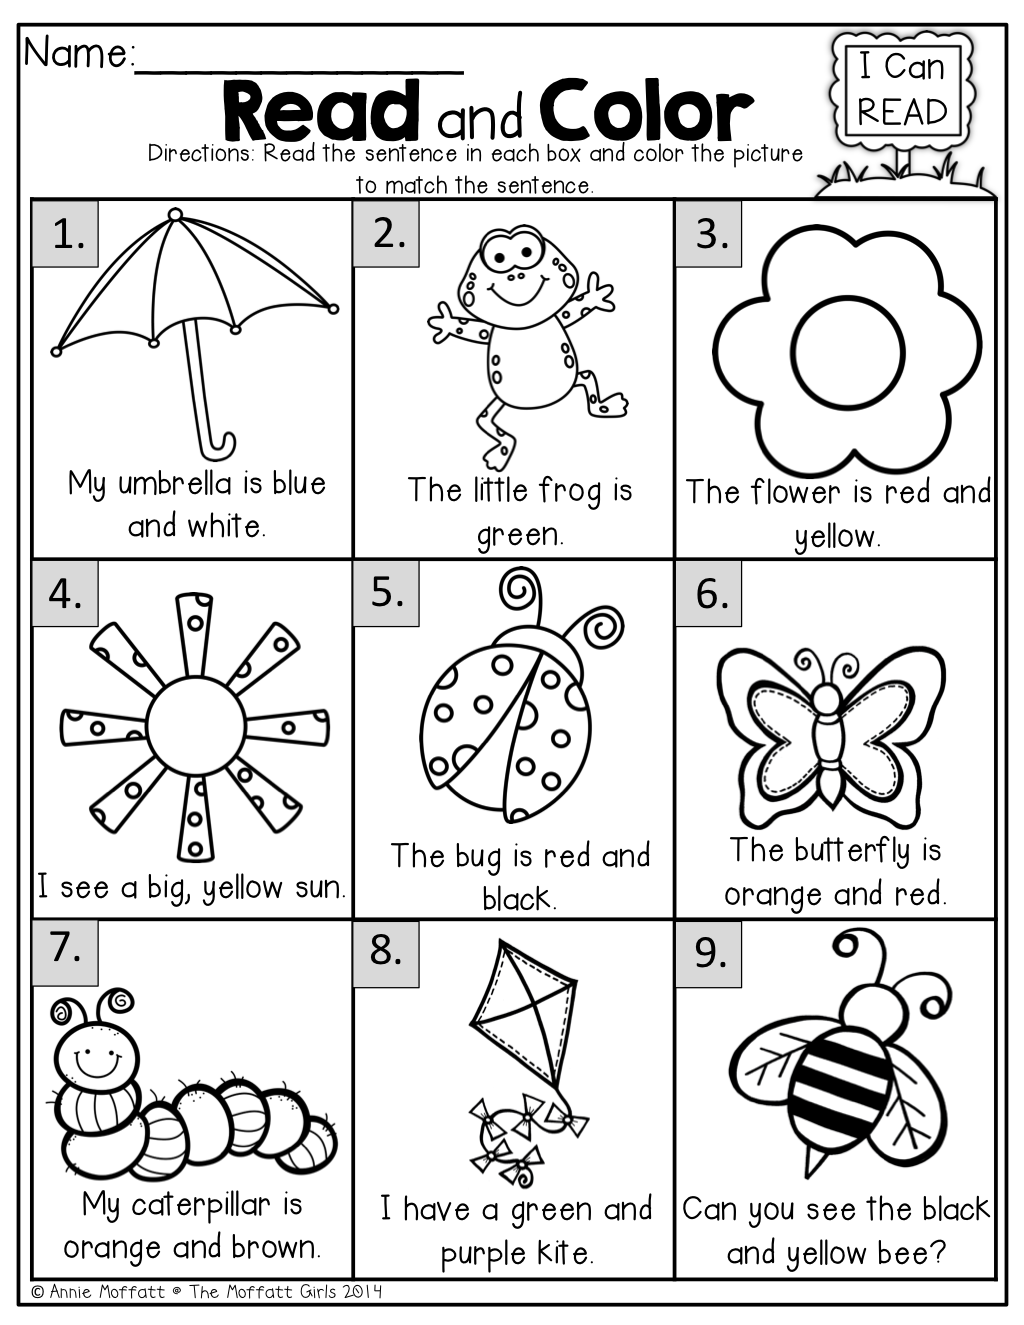 Workbooks worksheets for nursery in english : Read and Color! Read the SIMPLE sentence and color correctly ...